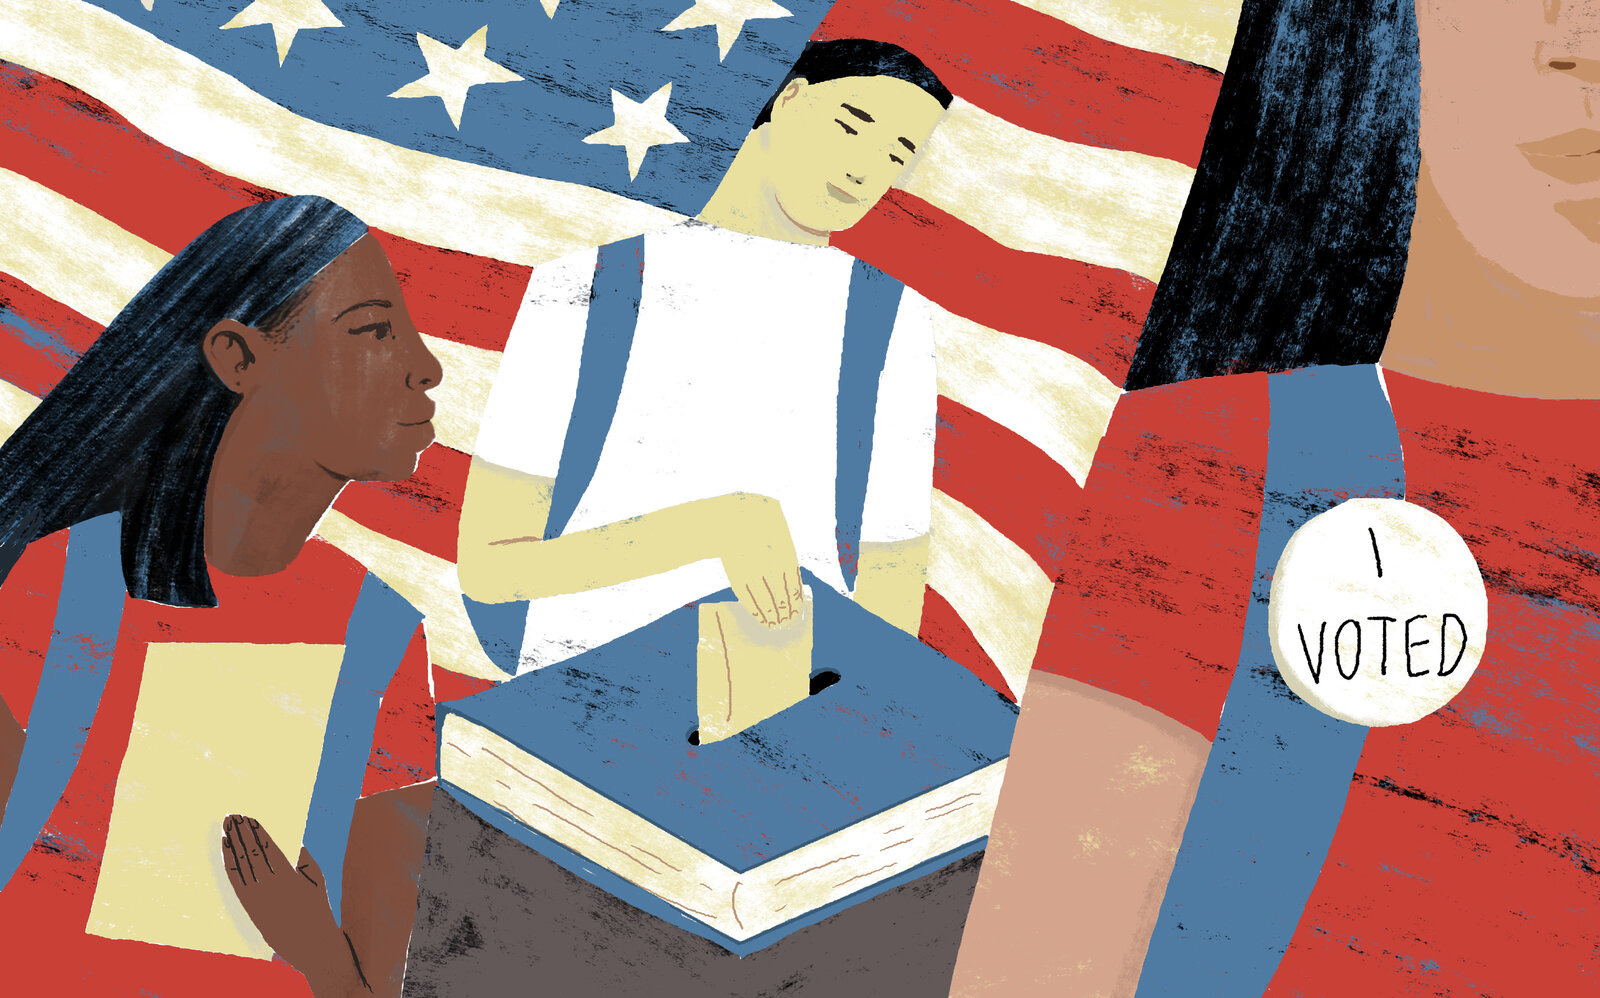 Teaching civics to kids can help them eventually be more engaged voters.